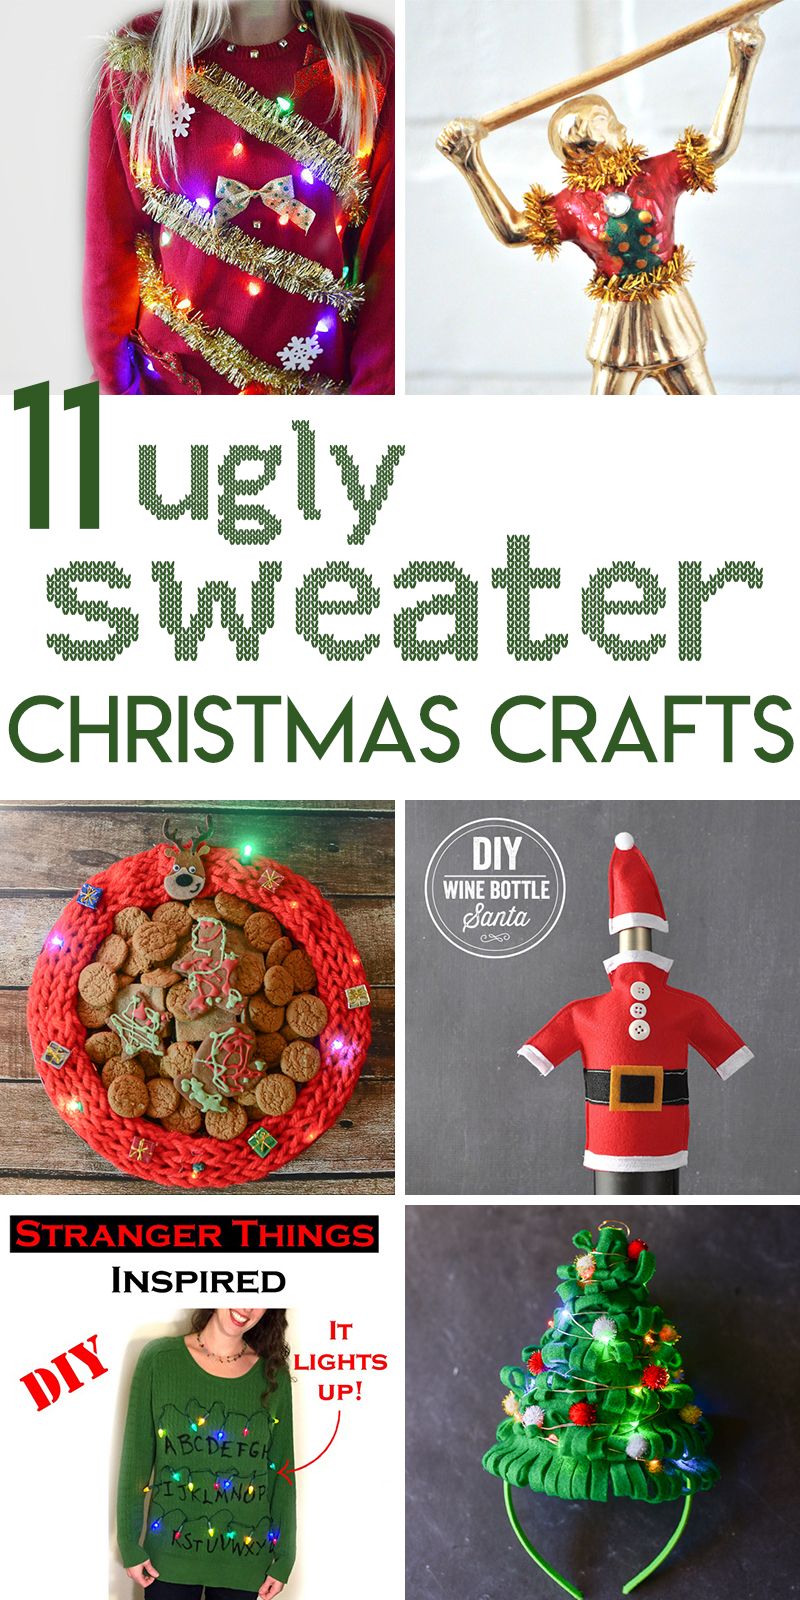 11 ugly sweater crafts to DIY for your Christmas party